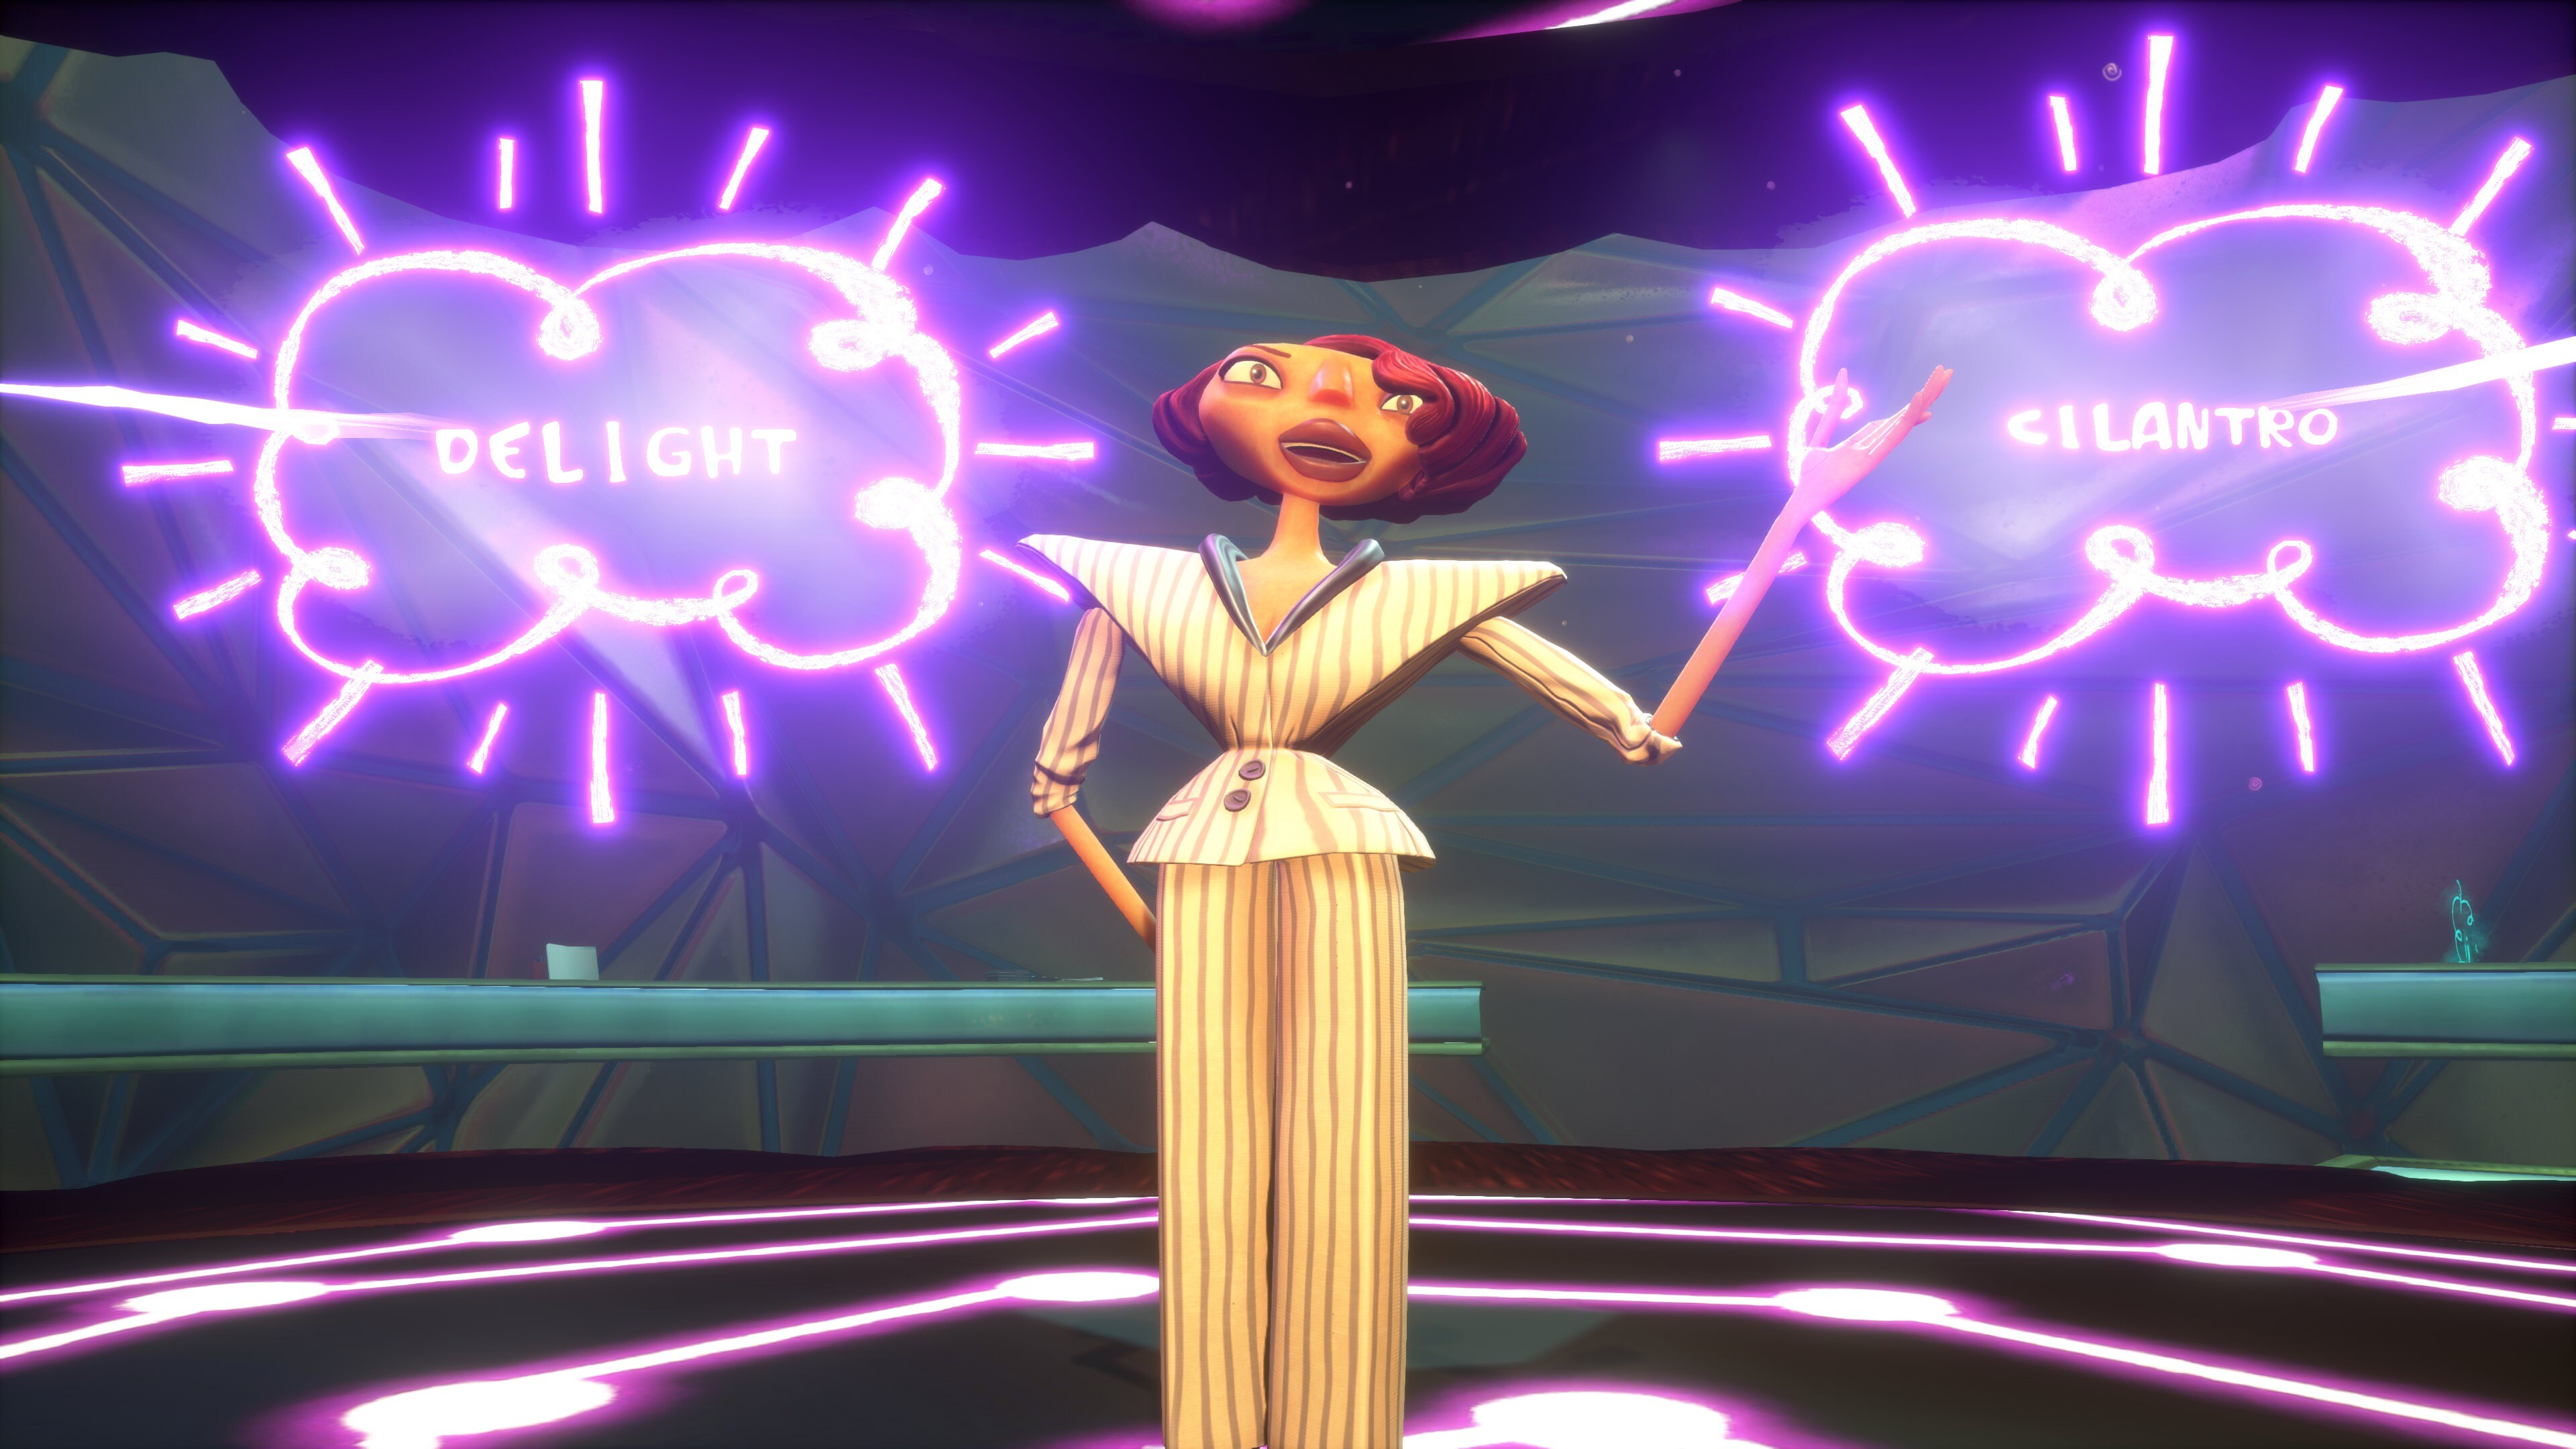 Psychonauts 2 Screenshot - Hollis Forsythe demonstrates Mental Connection, associating Delight with Cilantro